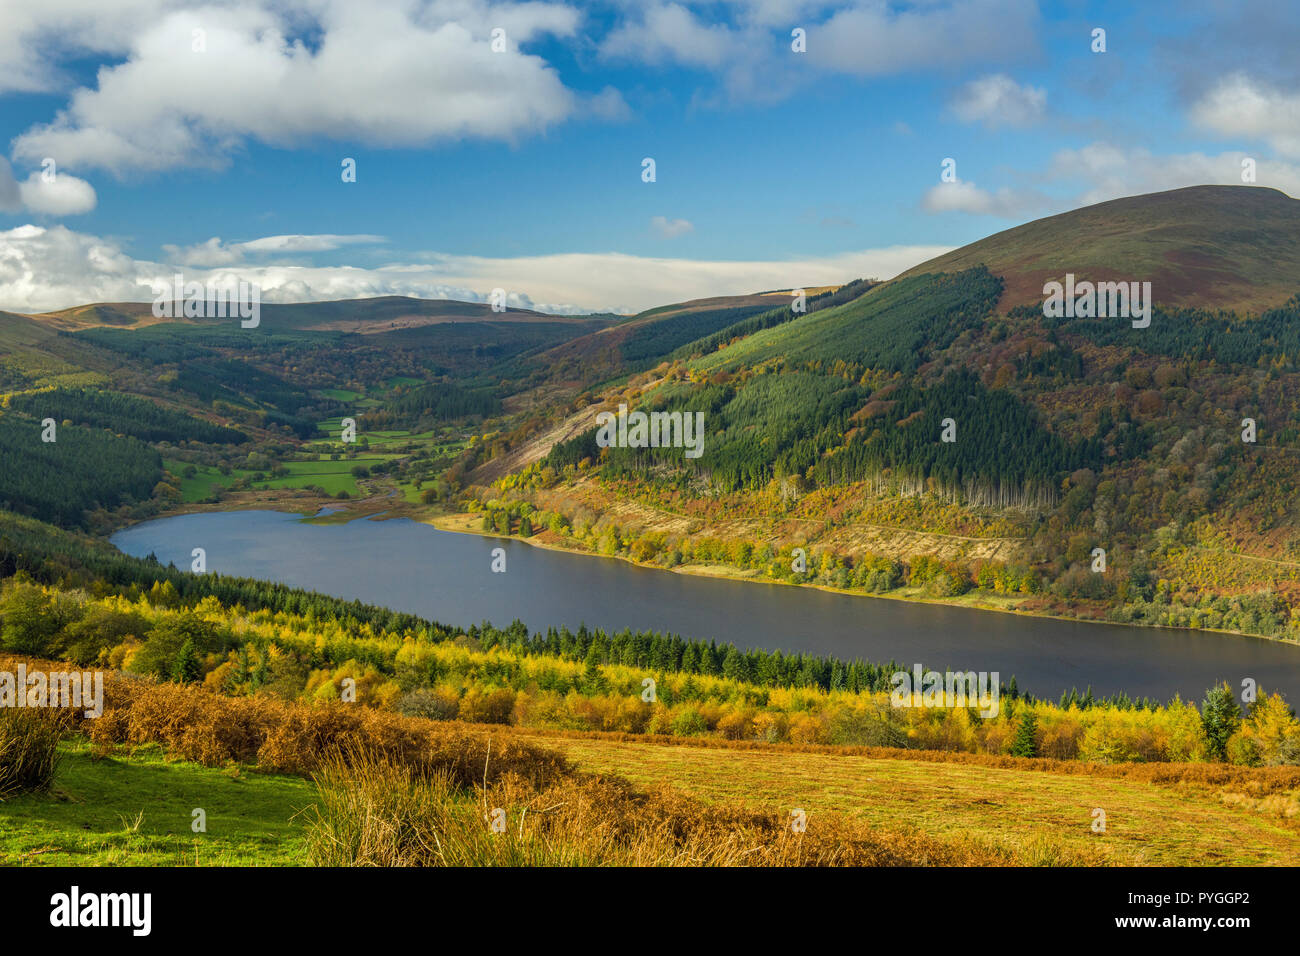 The Talybont Reservoir and Valley in the Central Brecon Beacons seen from Bwlch y Waun above. The shot was taken on a bright and cold autumn morning - Stock Image